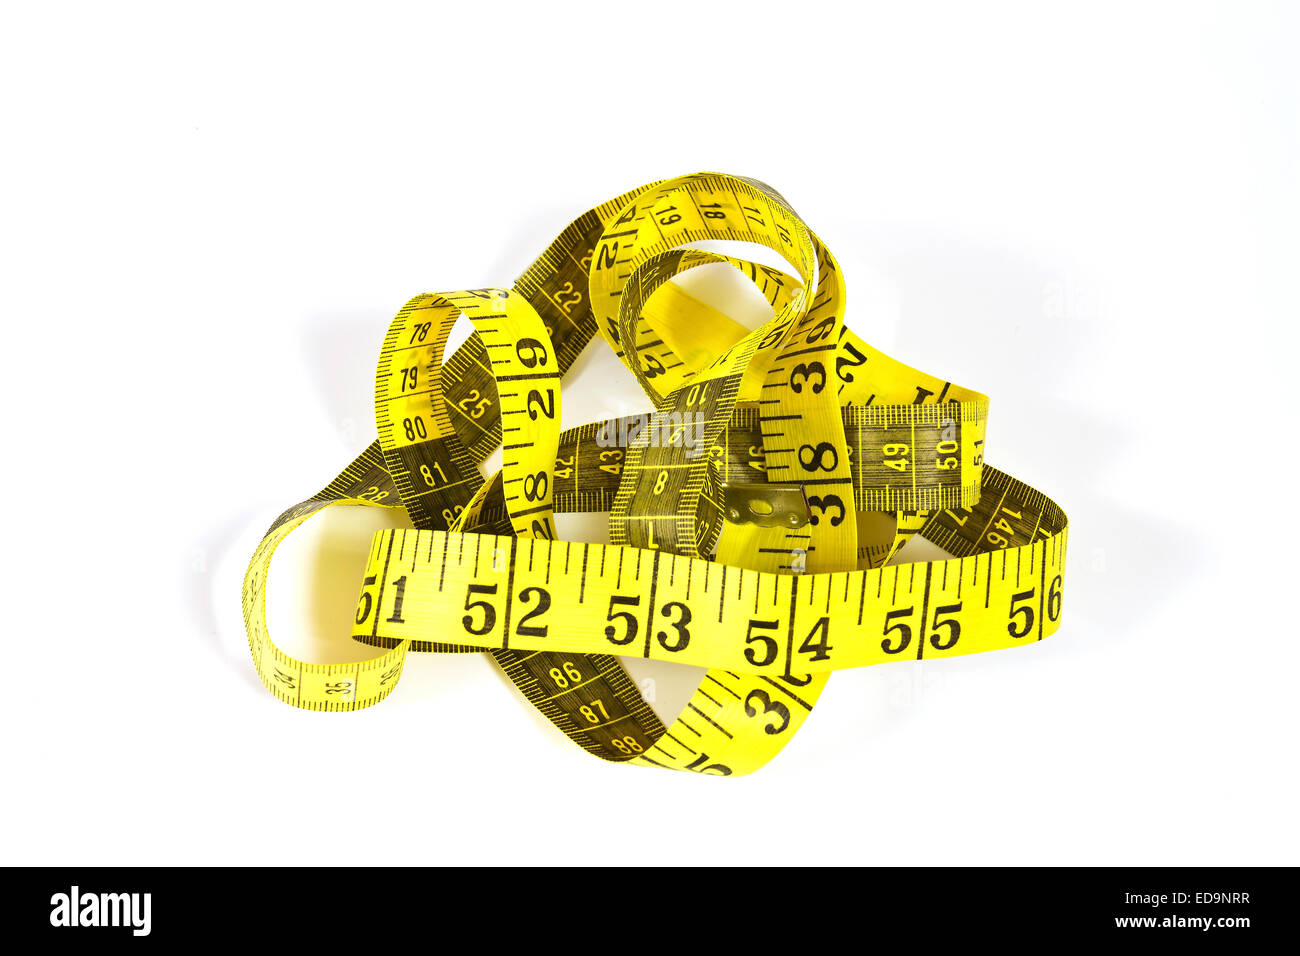 Tape measure with inch and centimeter scale on a white background - Stock Image